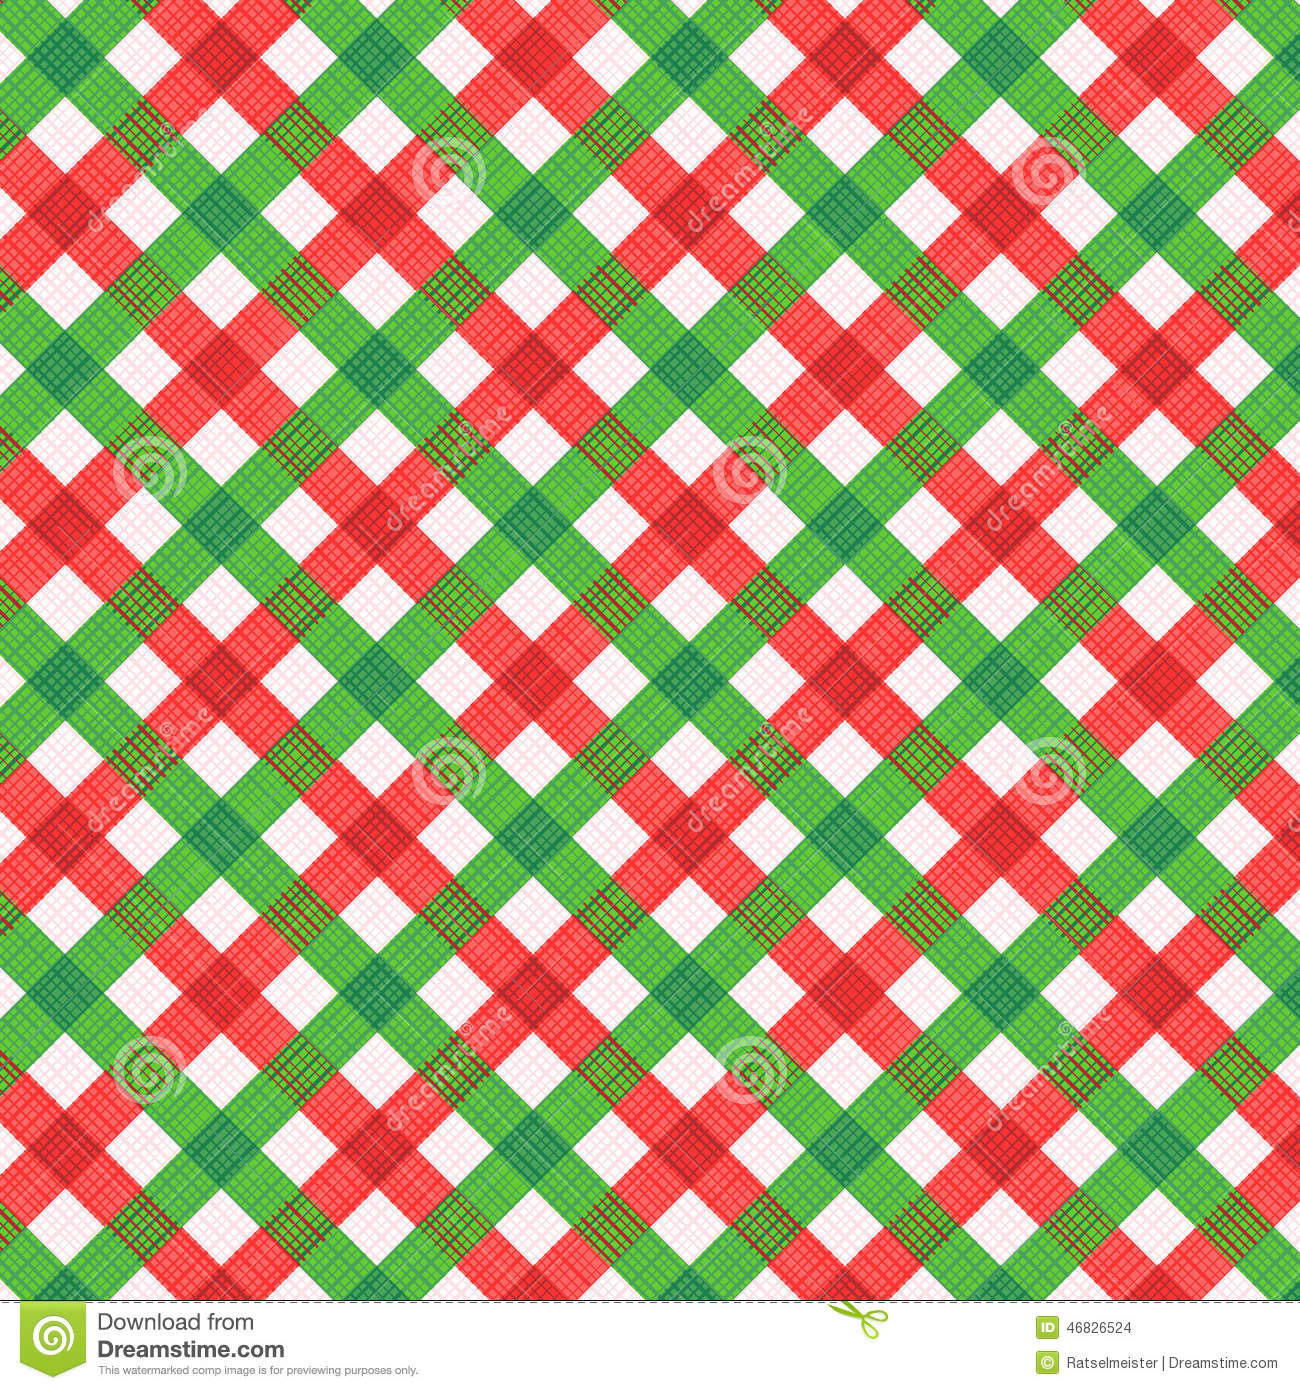 Christmas Red And Green Gingham Fabric, Seamless Pattern Included ...